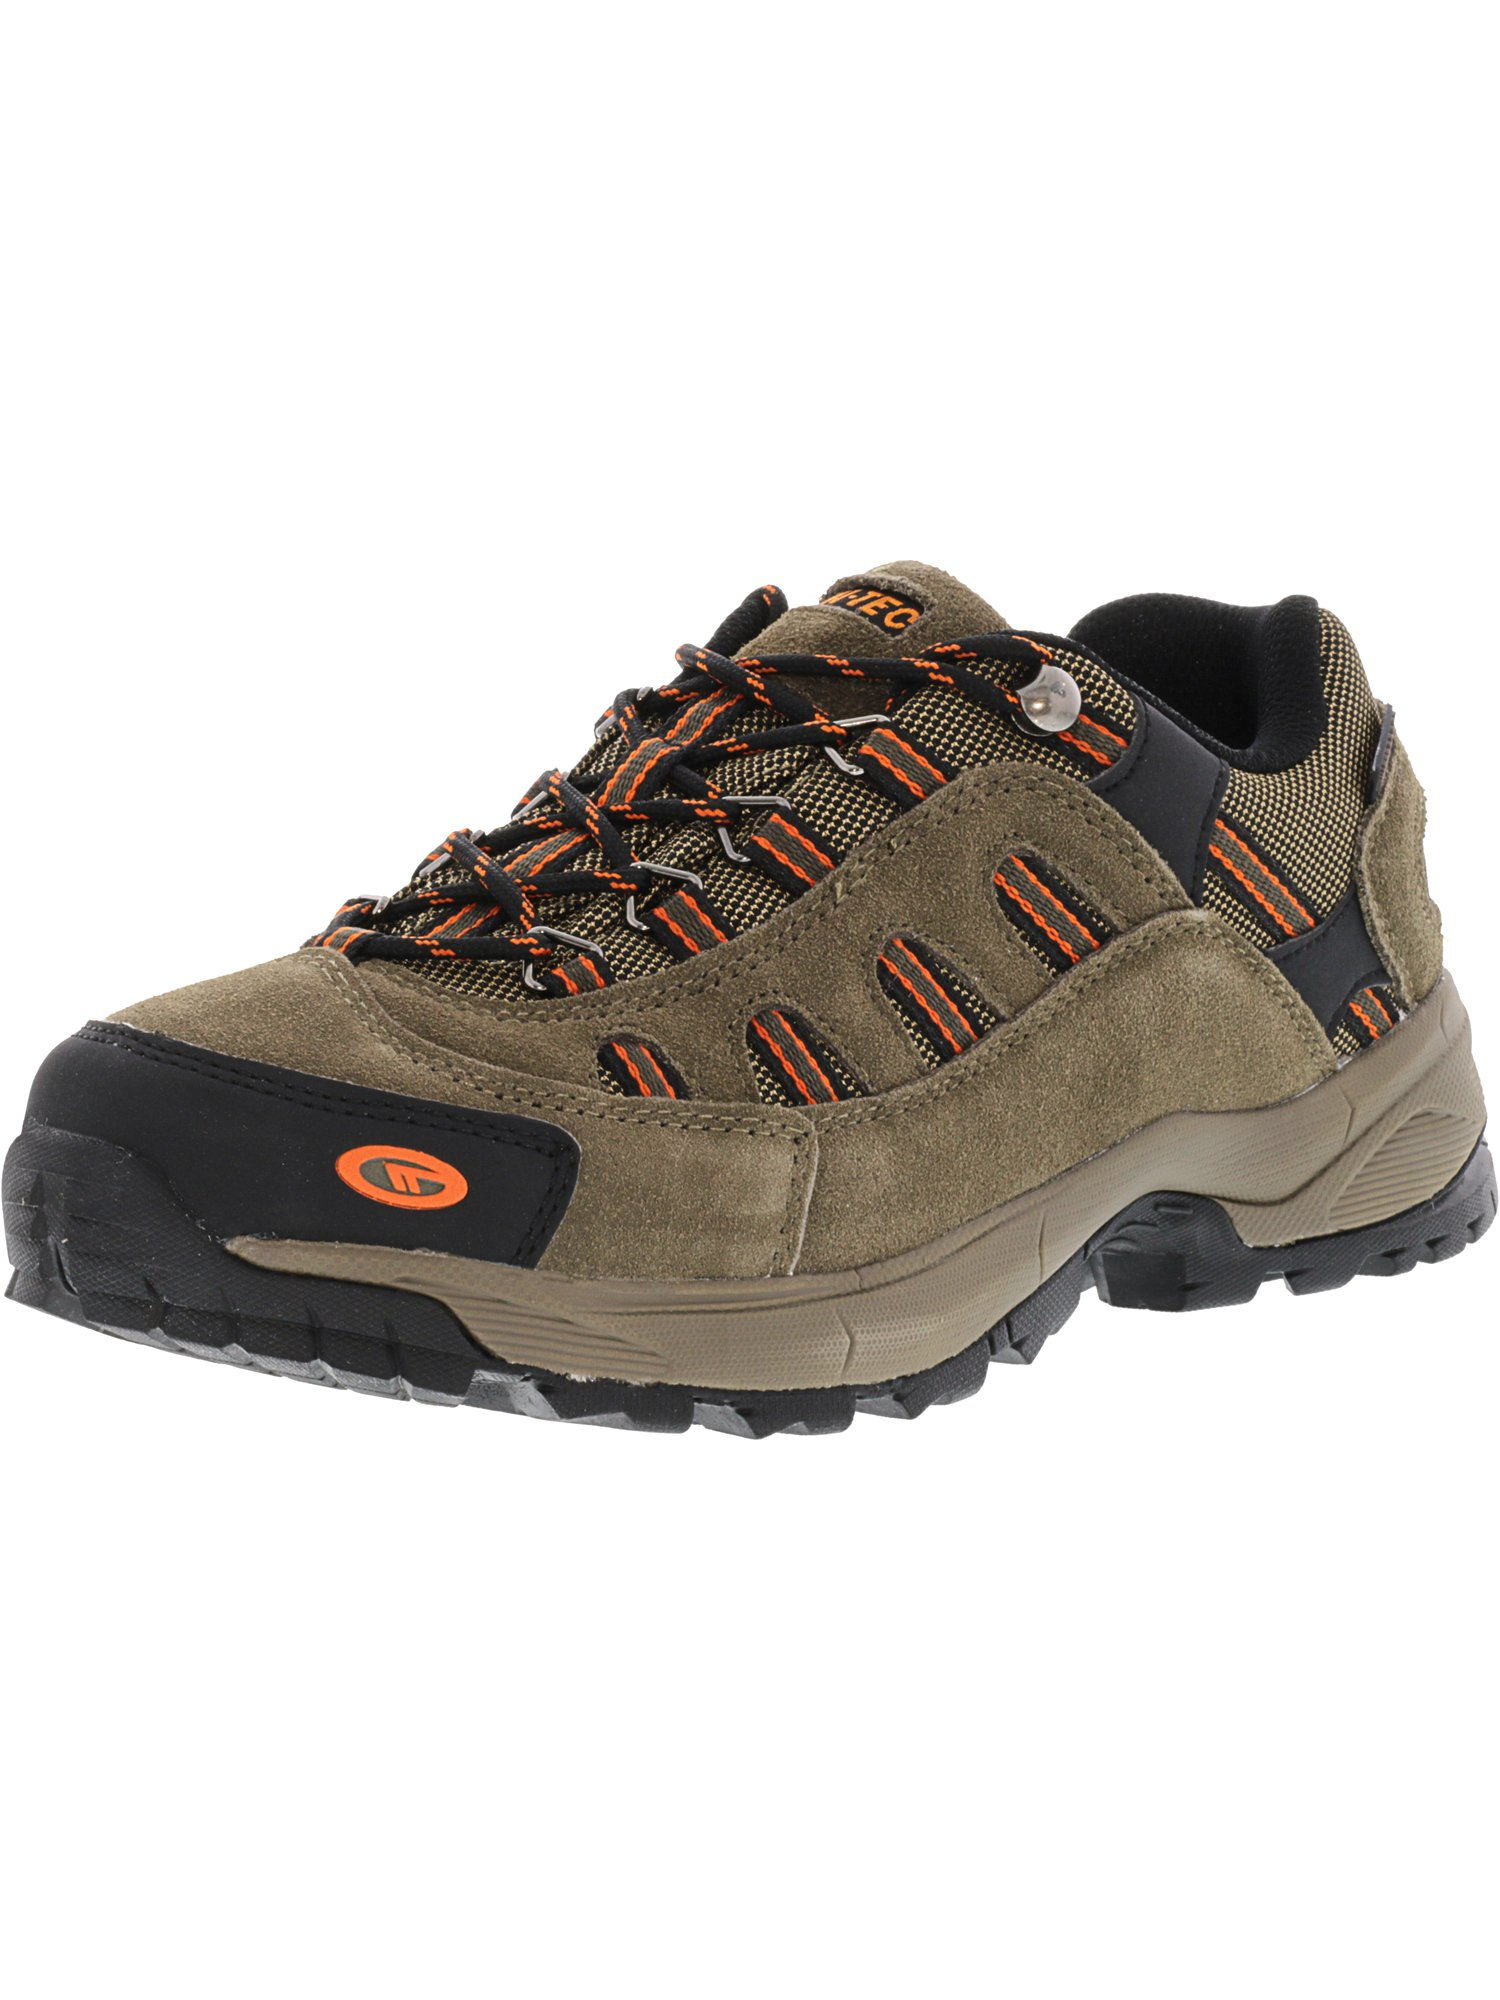 Hi-Tec Men's Bandera Ultra Low Waterproof Smokey Brown   Light Taupe Burnt Orange Ankle-High Leather Hiking Shoe 9M by Hi-Tec